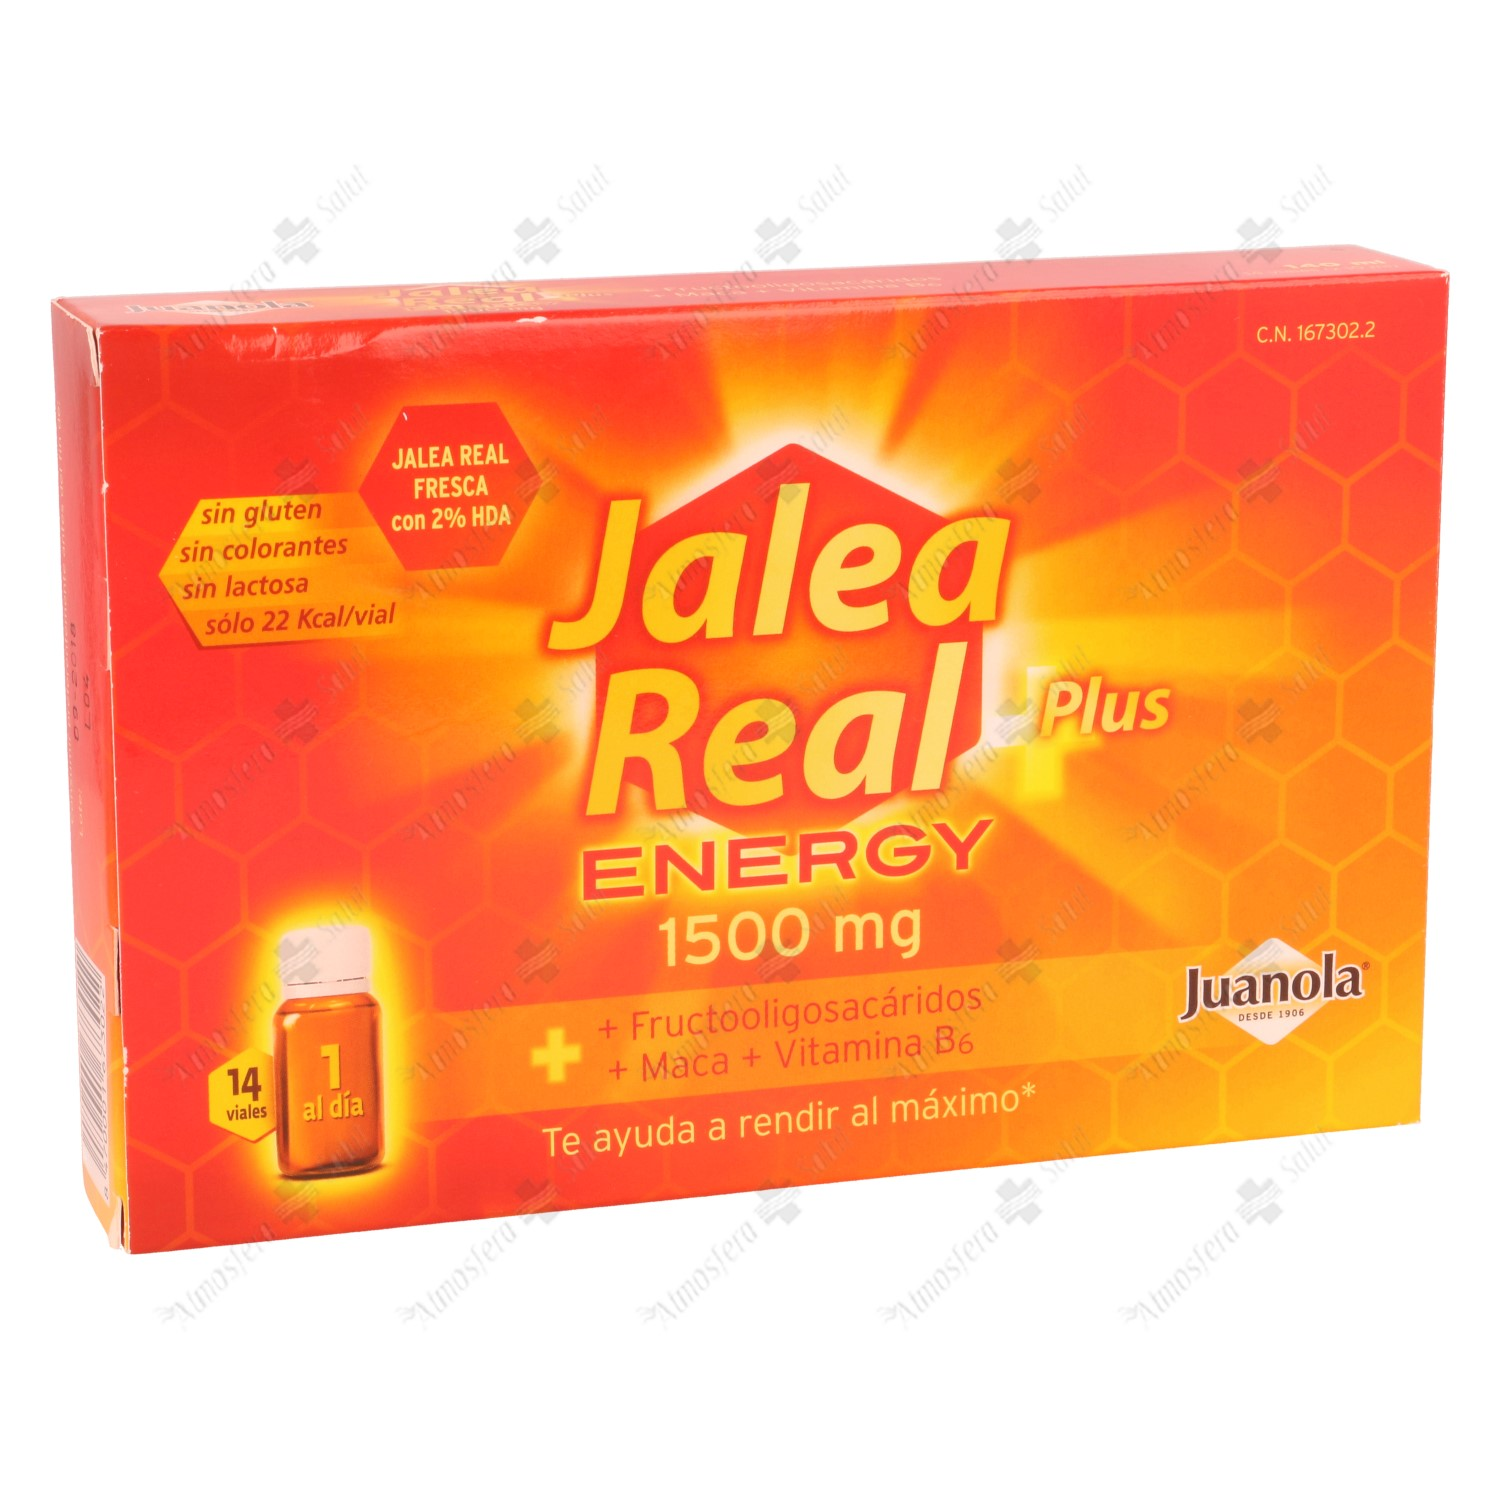 JALEA REAL JUANOLA ENERGY PLUS 14 VIALES